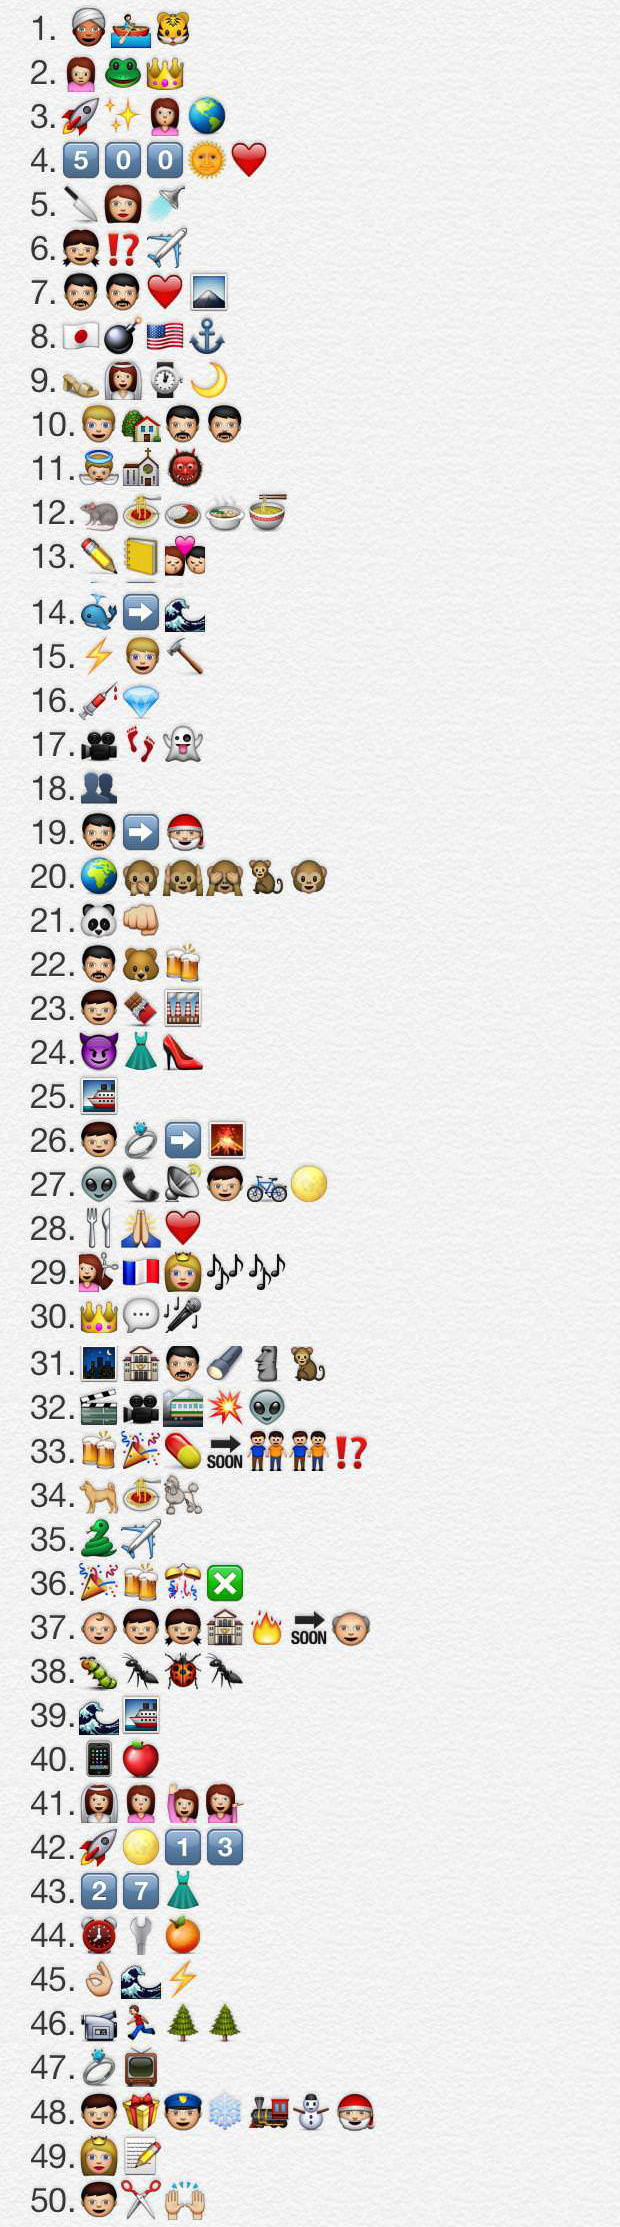 Guess the 50 movie names from Emoticons and smileys | Memolition